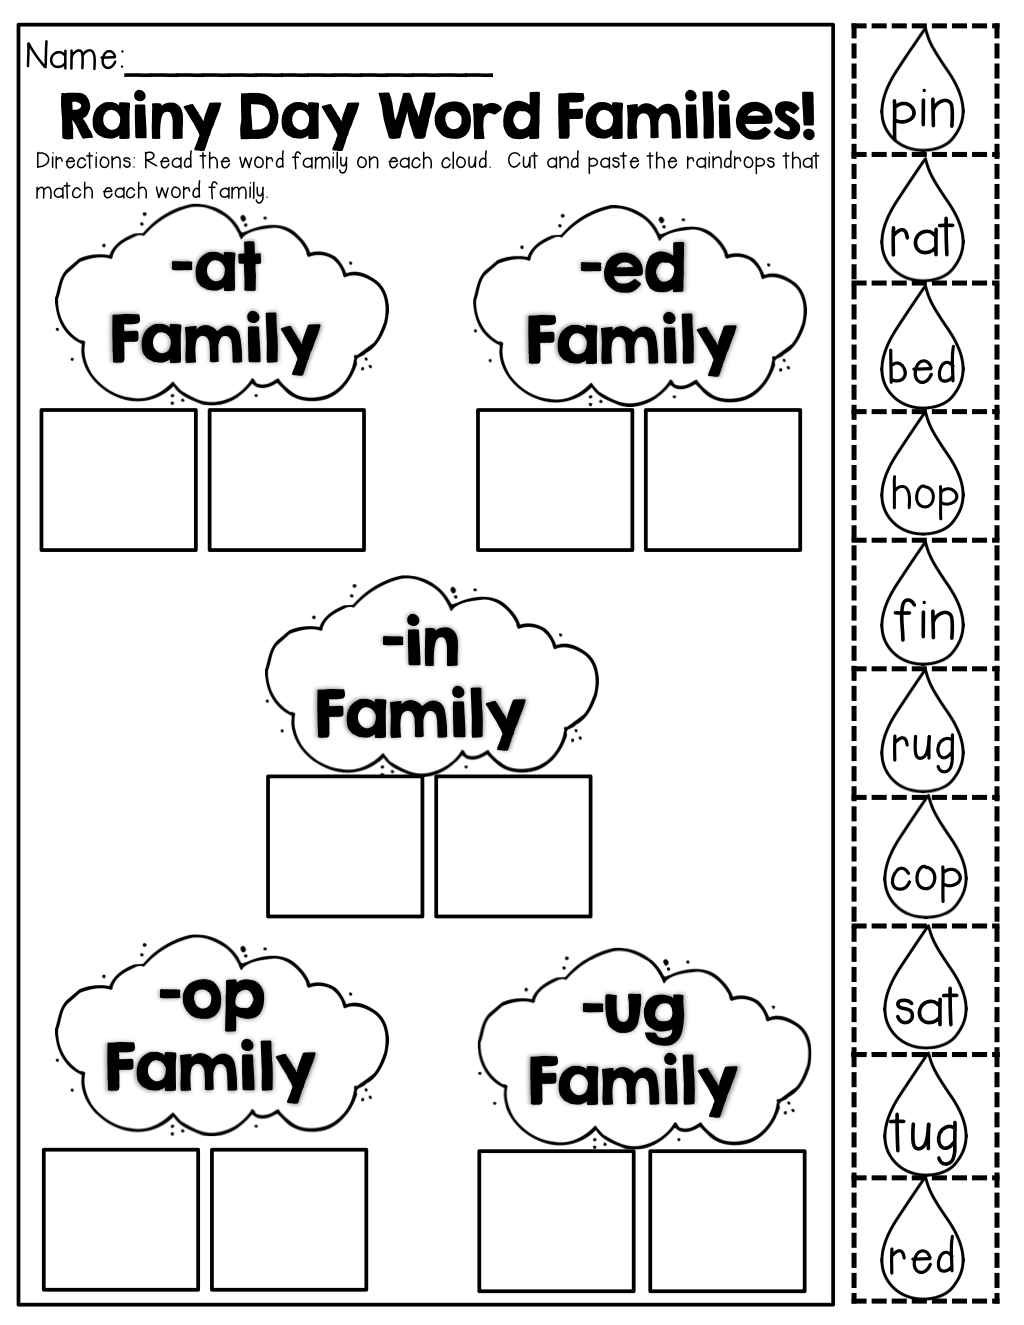 Rainy Day Word Families Make A Match